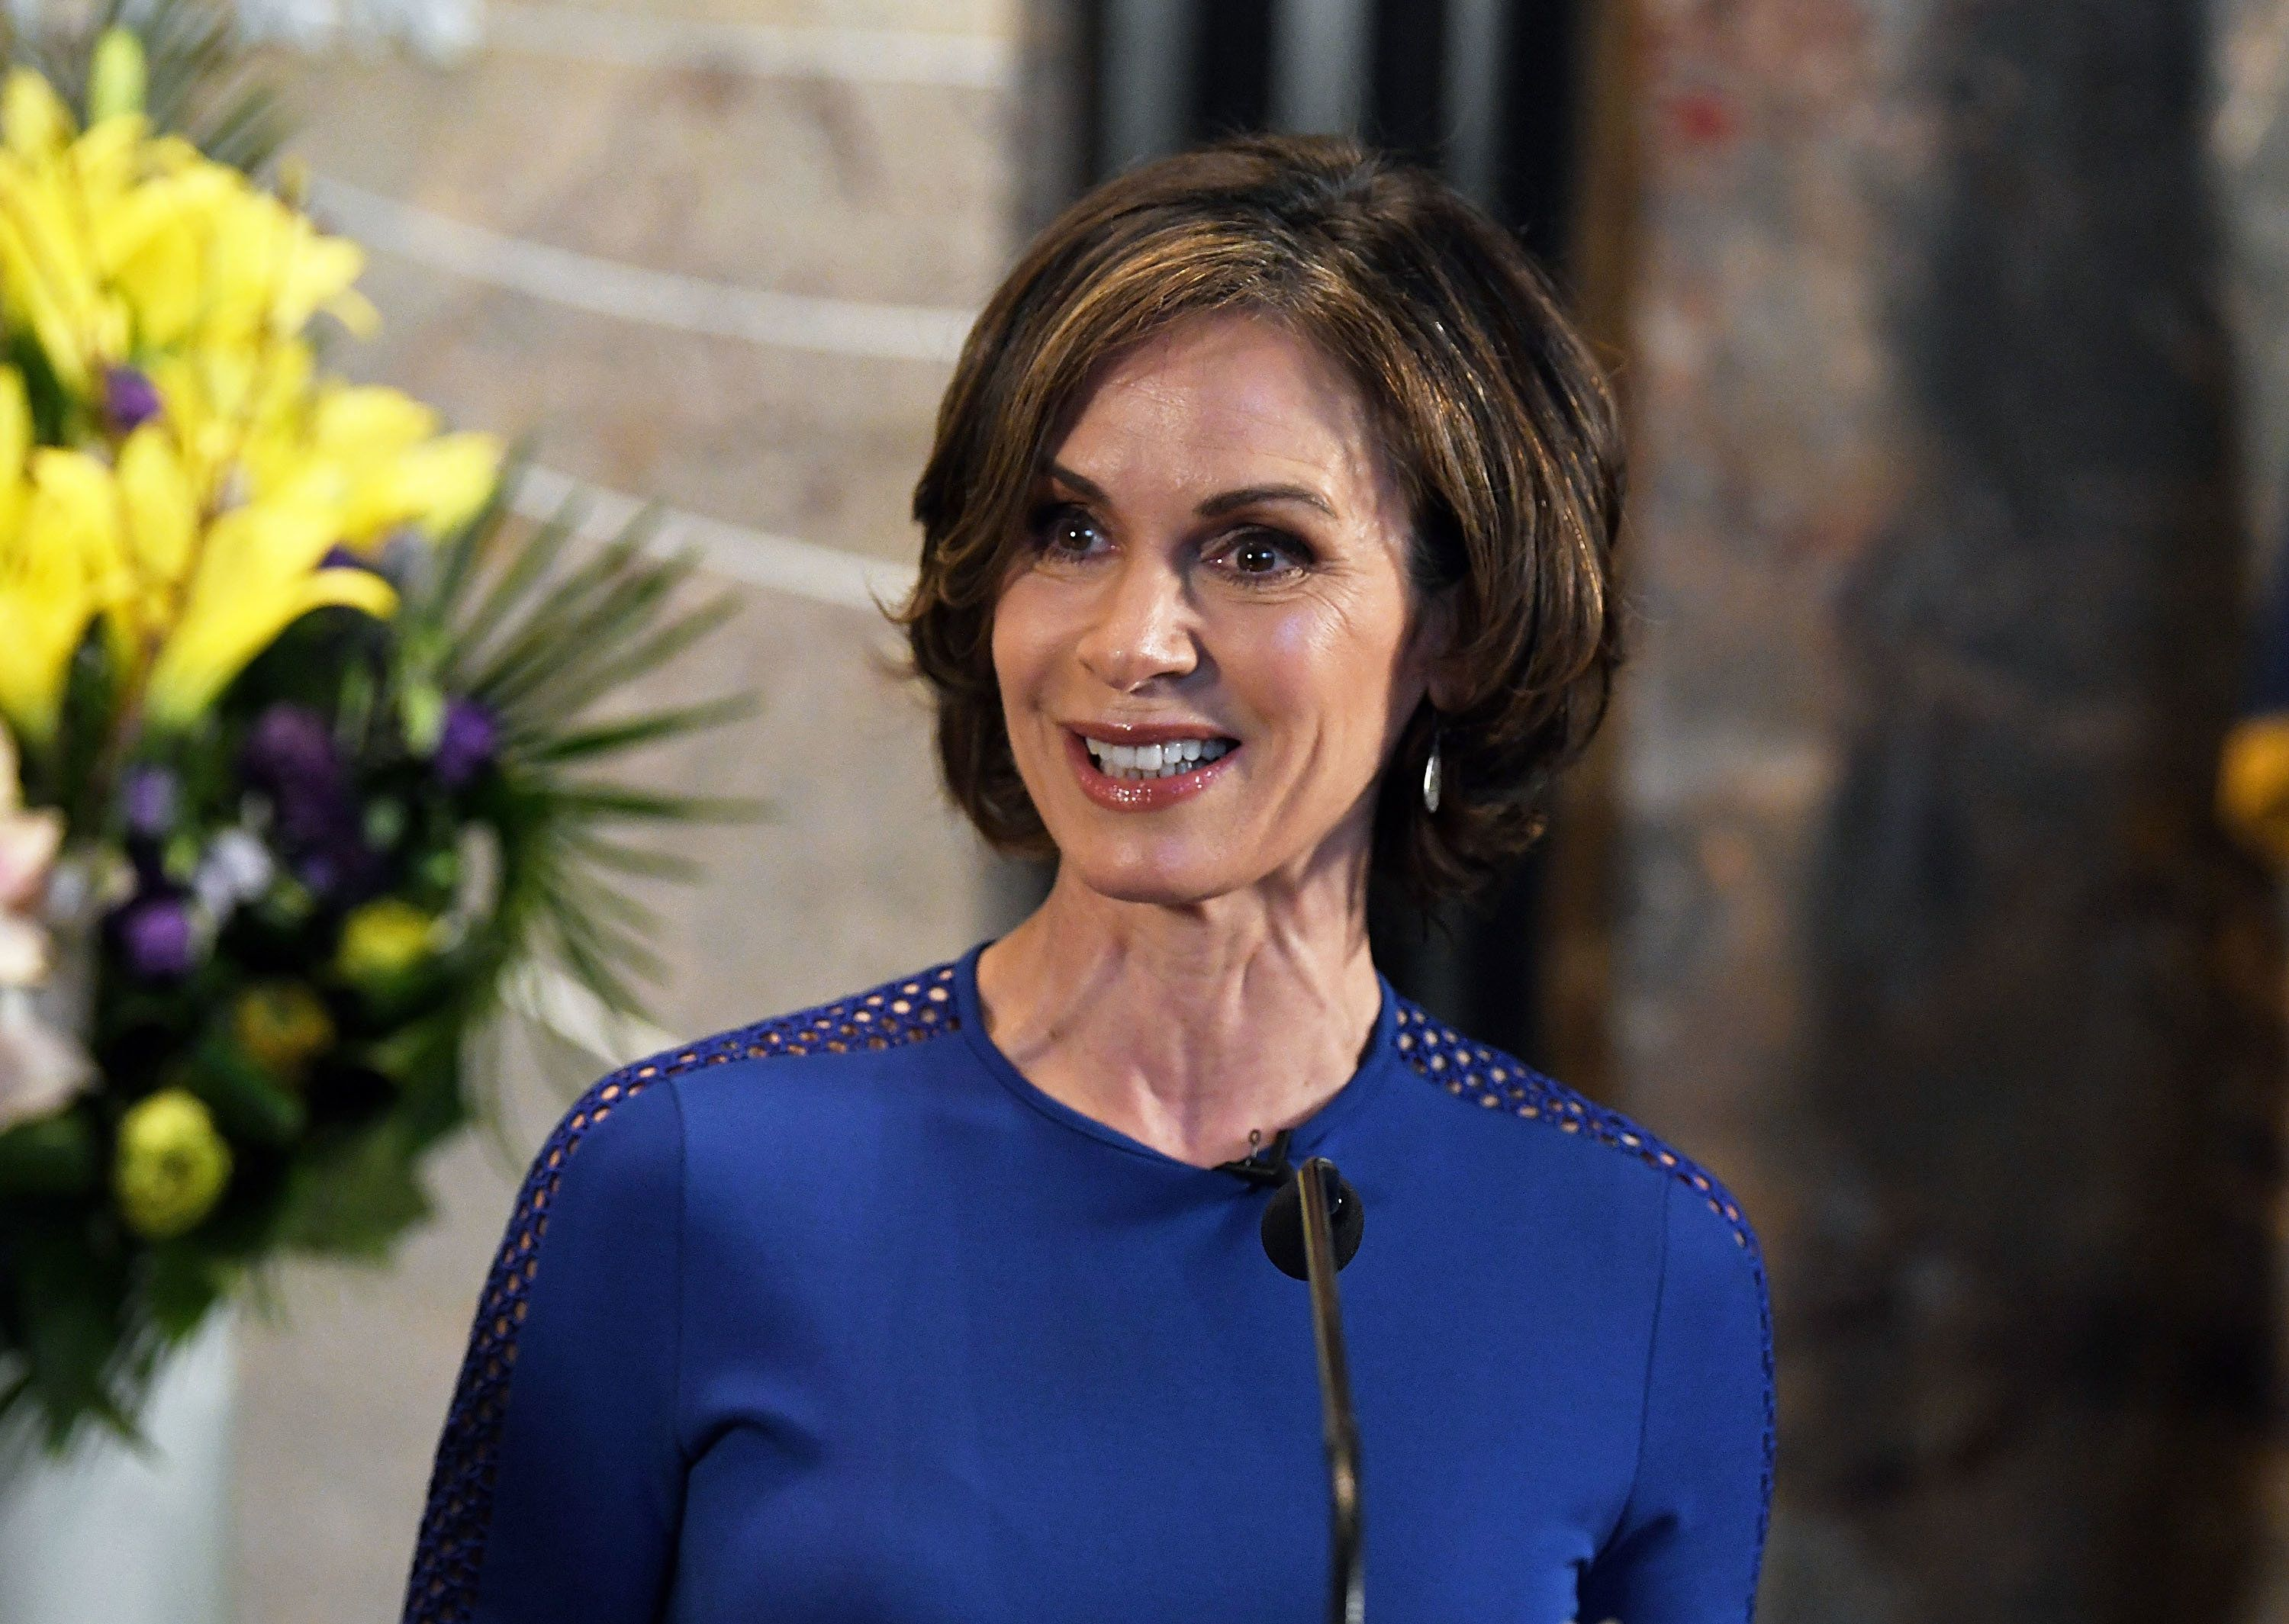 Elizabeth Vargas leaving ABC News after 22 years with the network